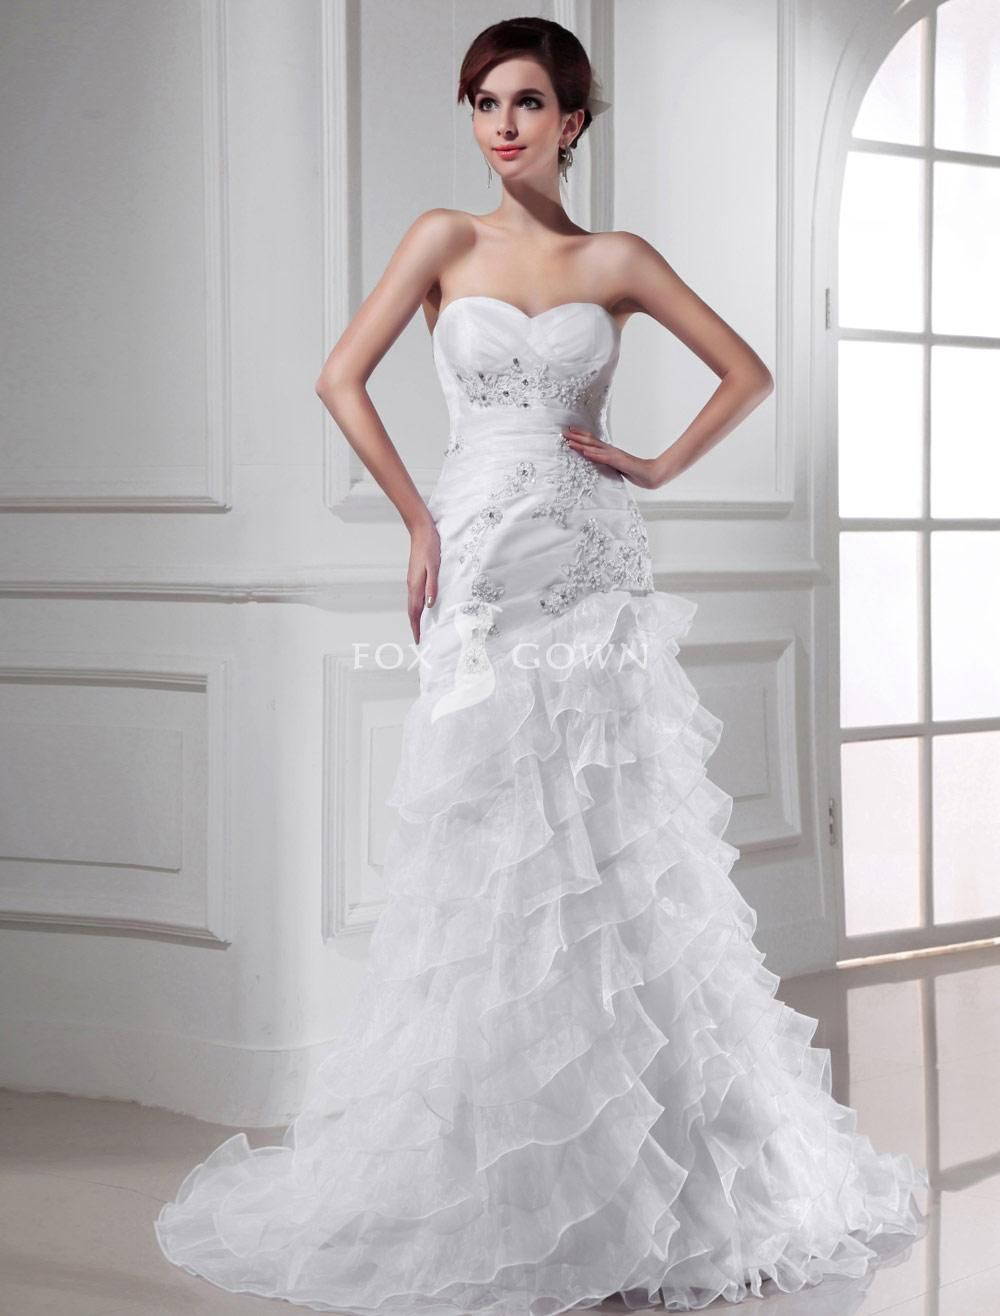 Sweetheart Strapless Fit And Flare Drop Waist Lique Organza Wedding Dress With Ruffled Skirt